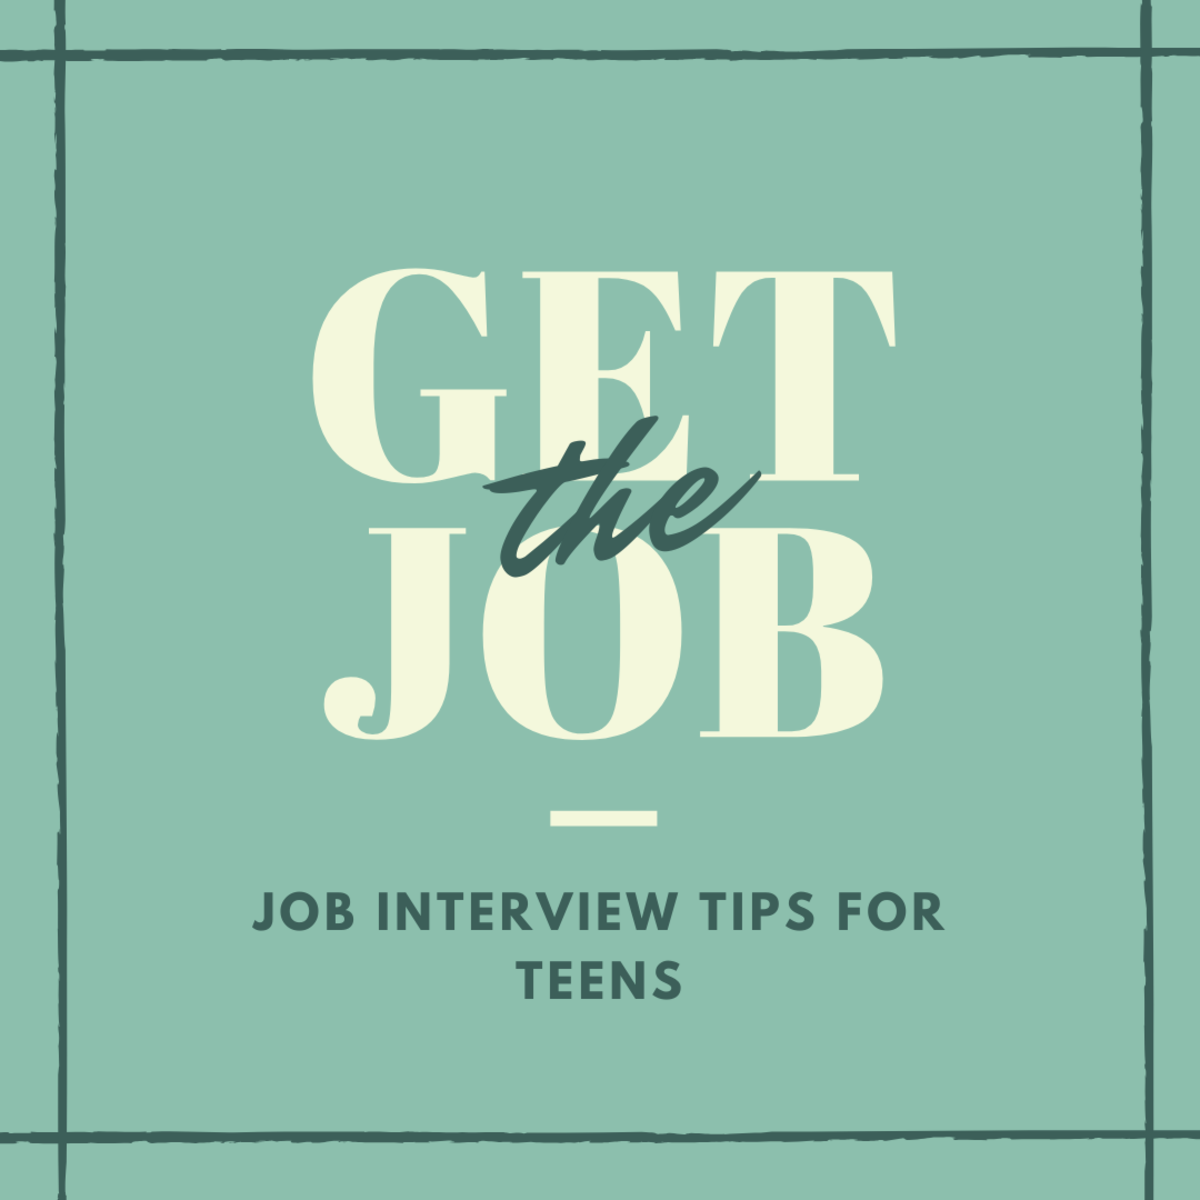 Tips for teens to ace their interview and get the job.